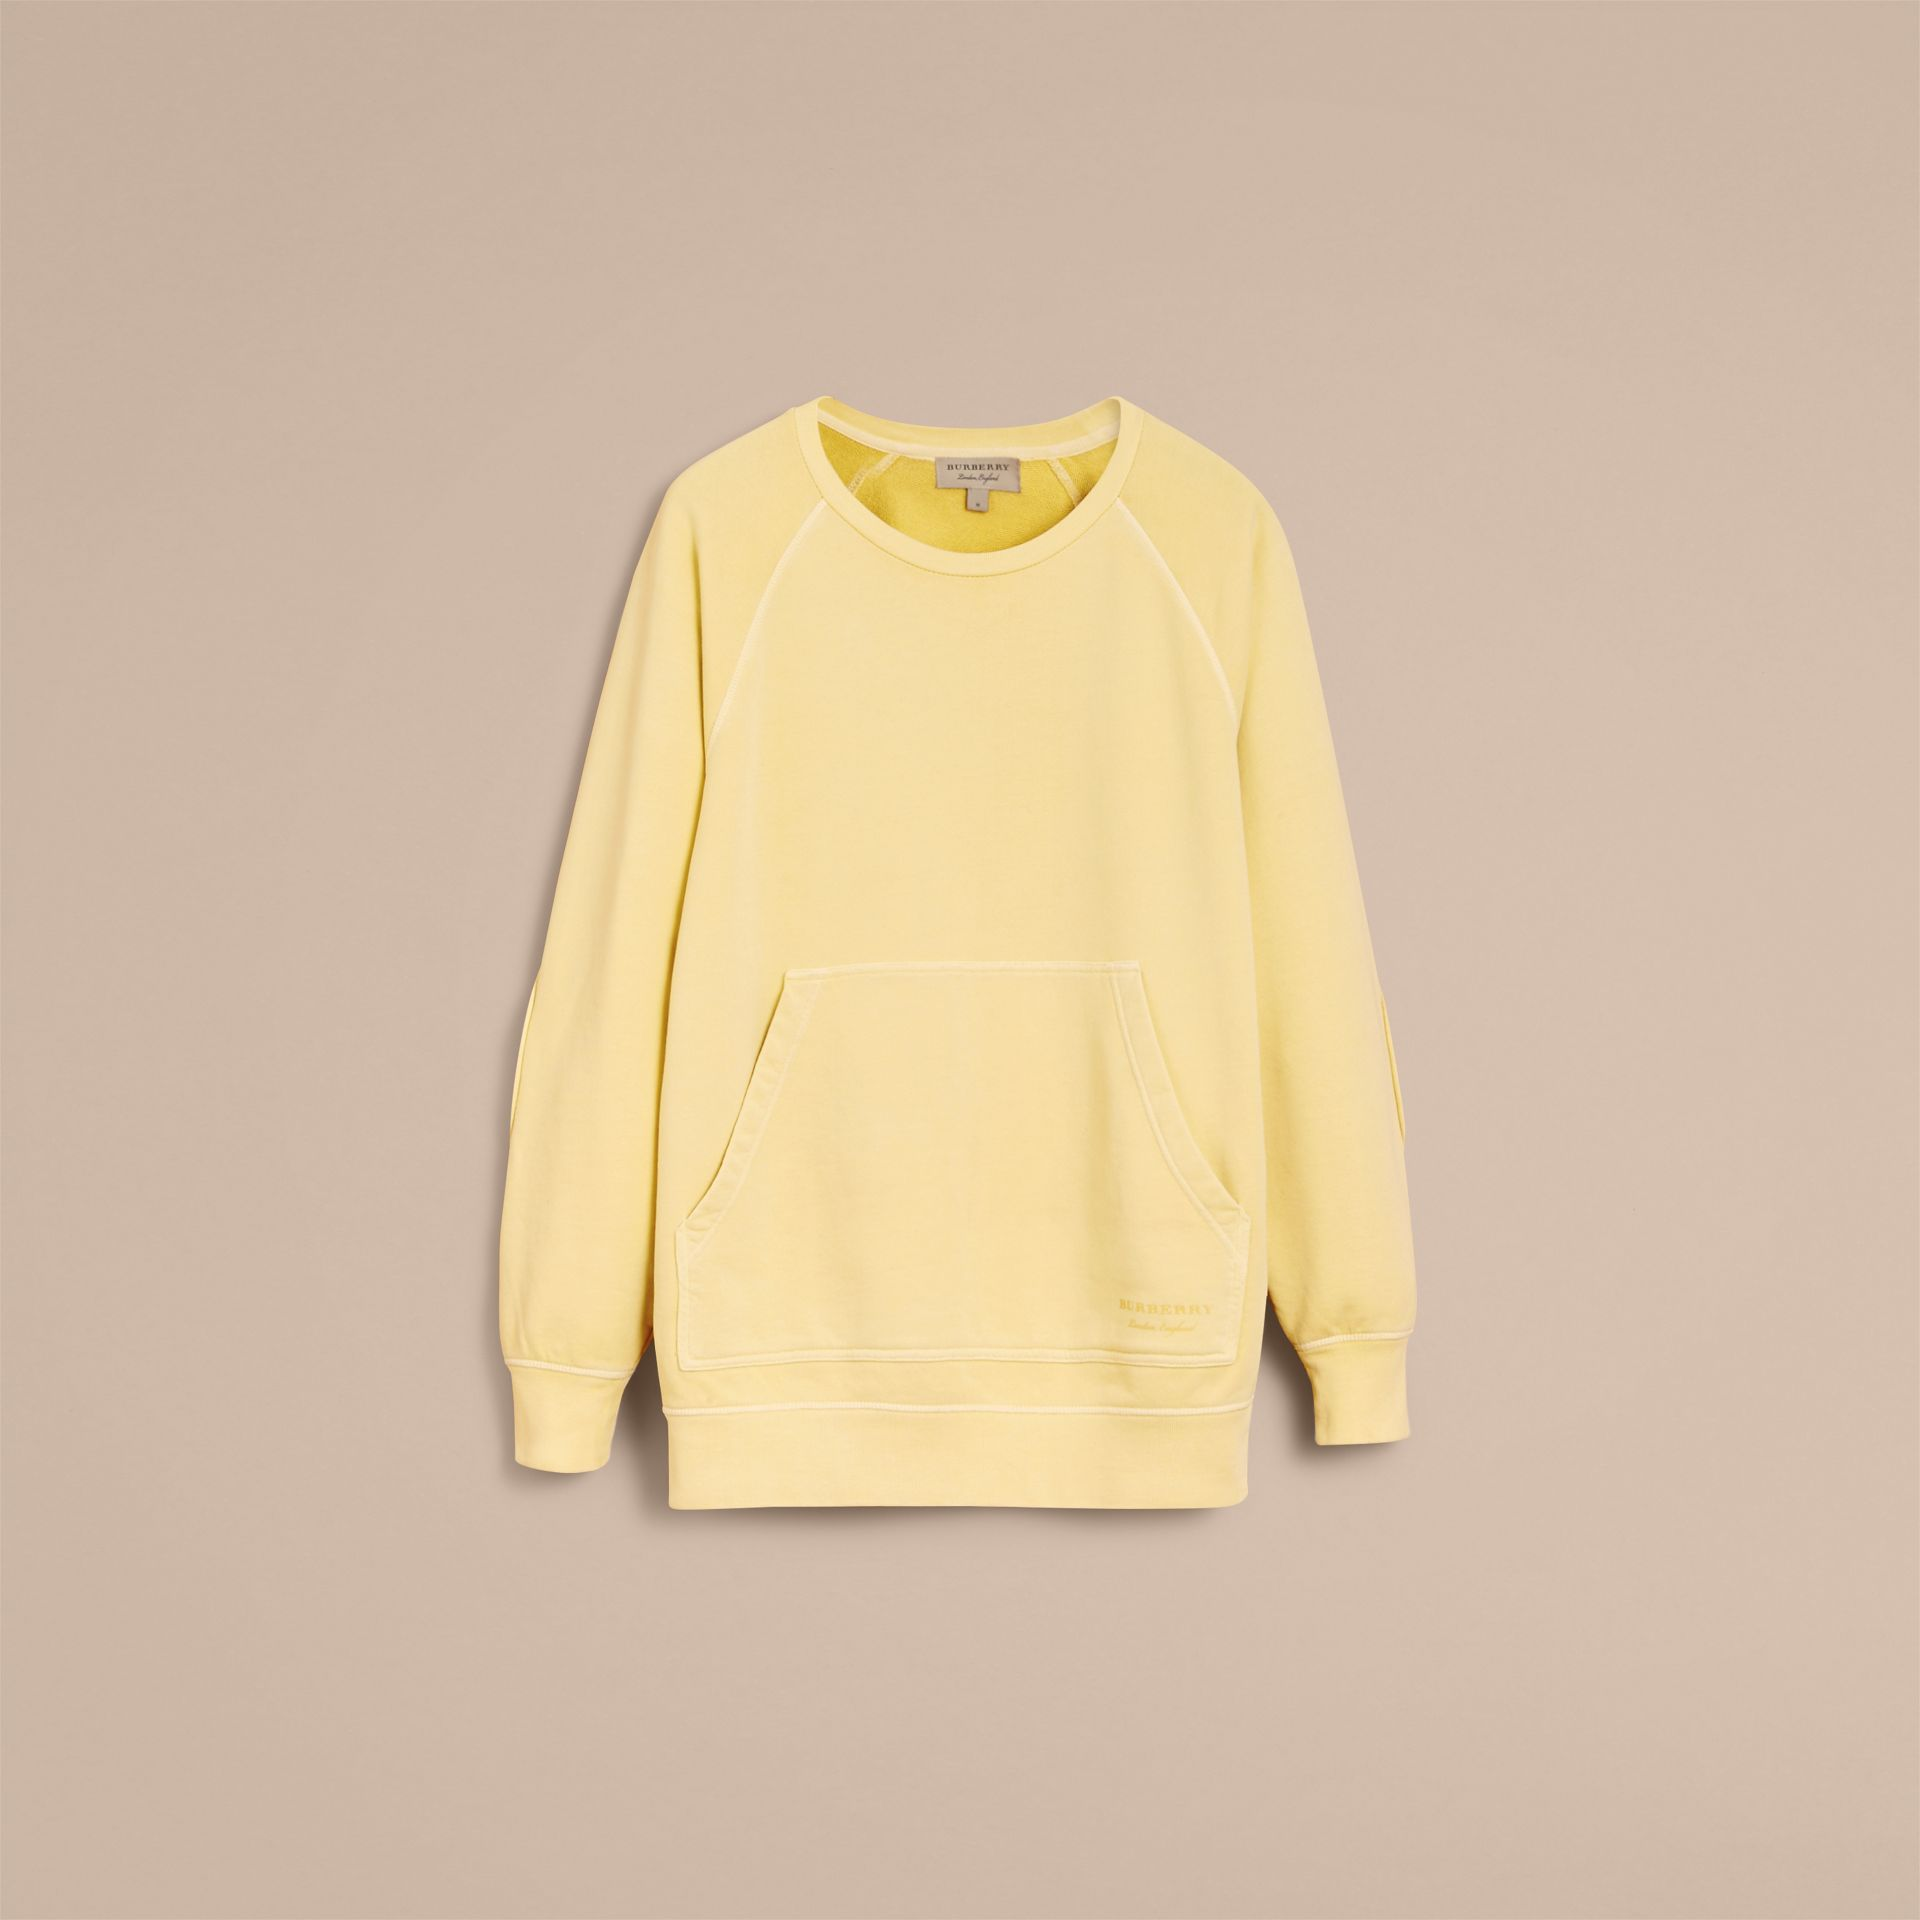 Unisex Pigment-dyed Cotton Oversize Sweatshirt in Pale Yellow - Men | Burberry Hong Kong - gallery image 4